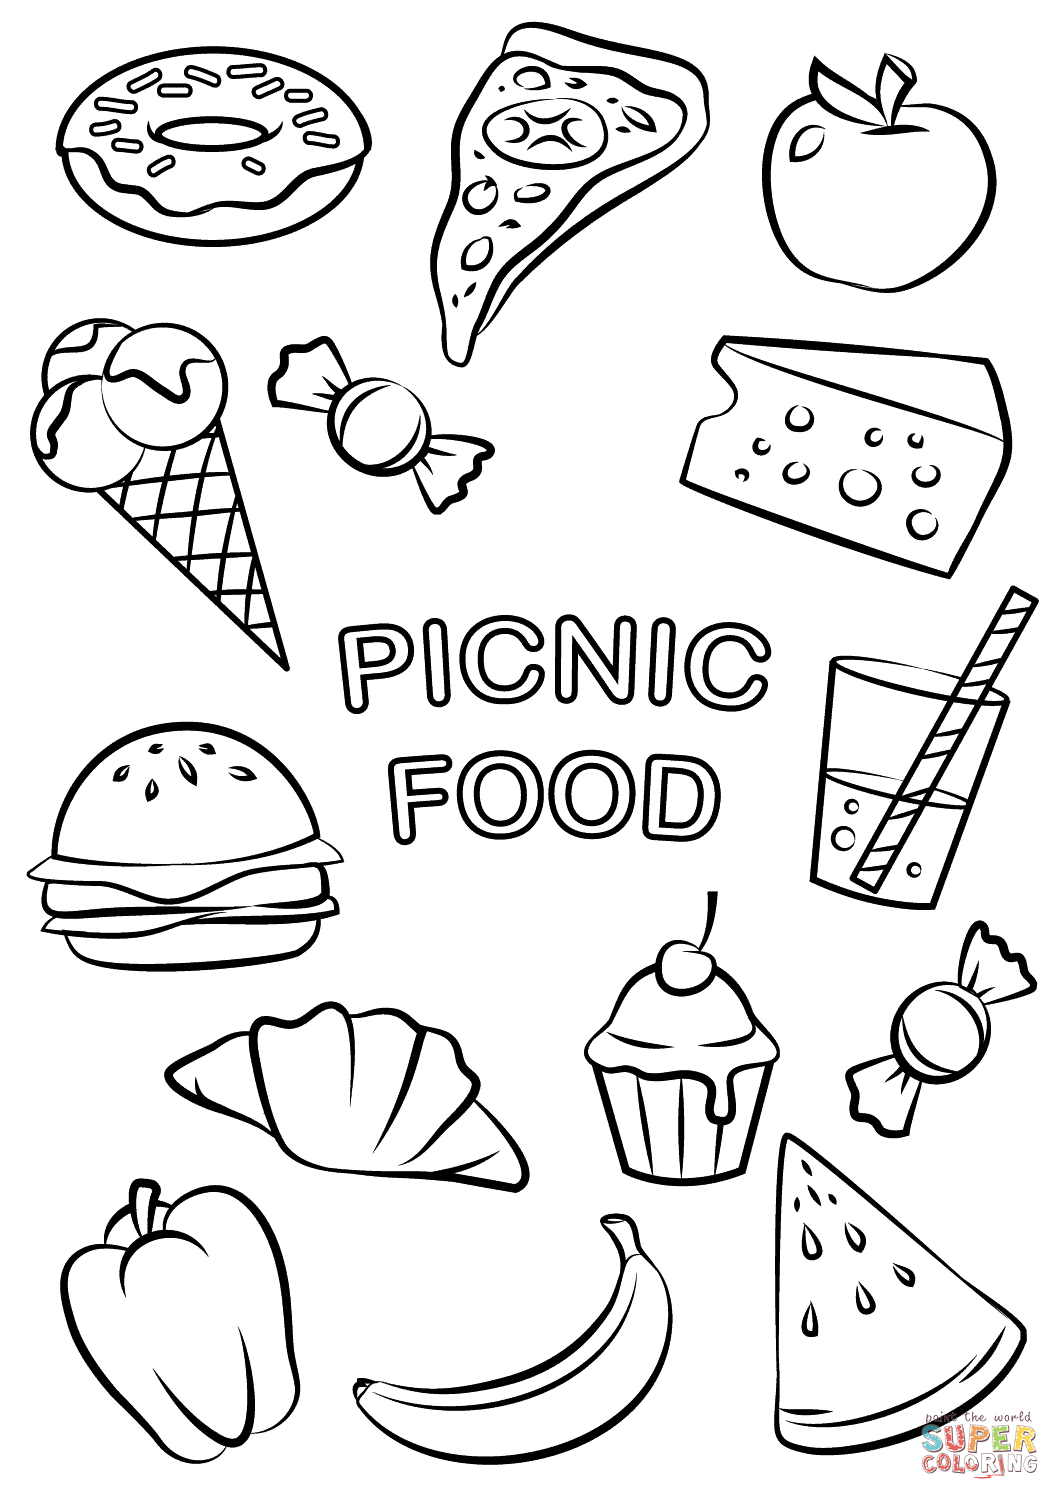 Picnic Food Coloring Page